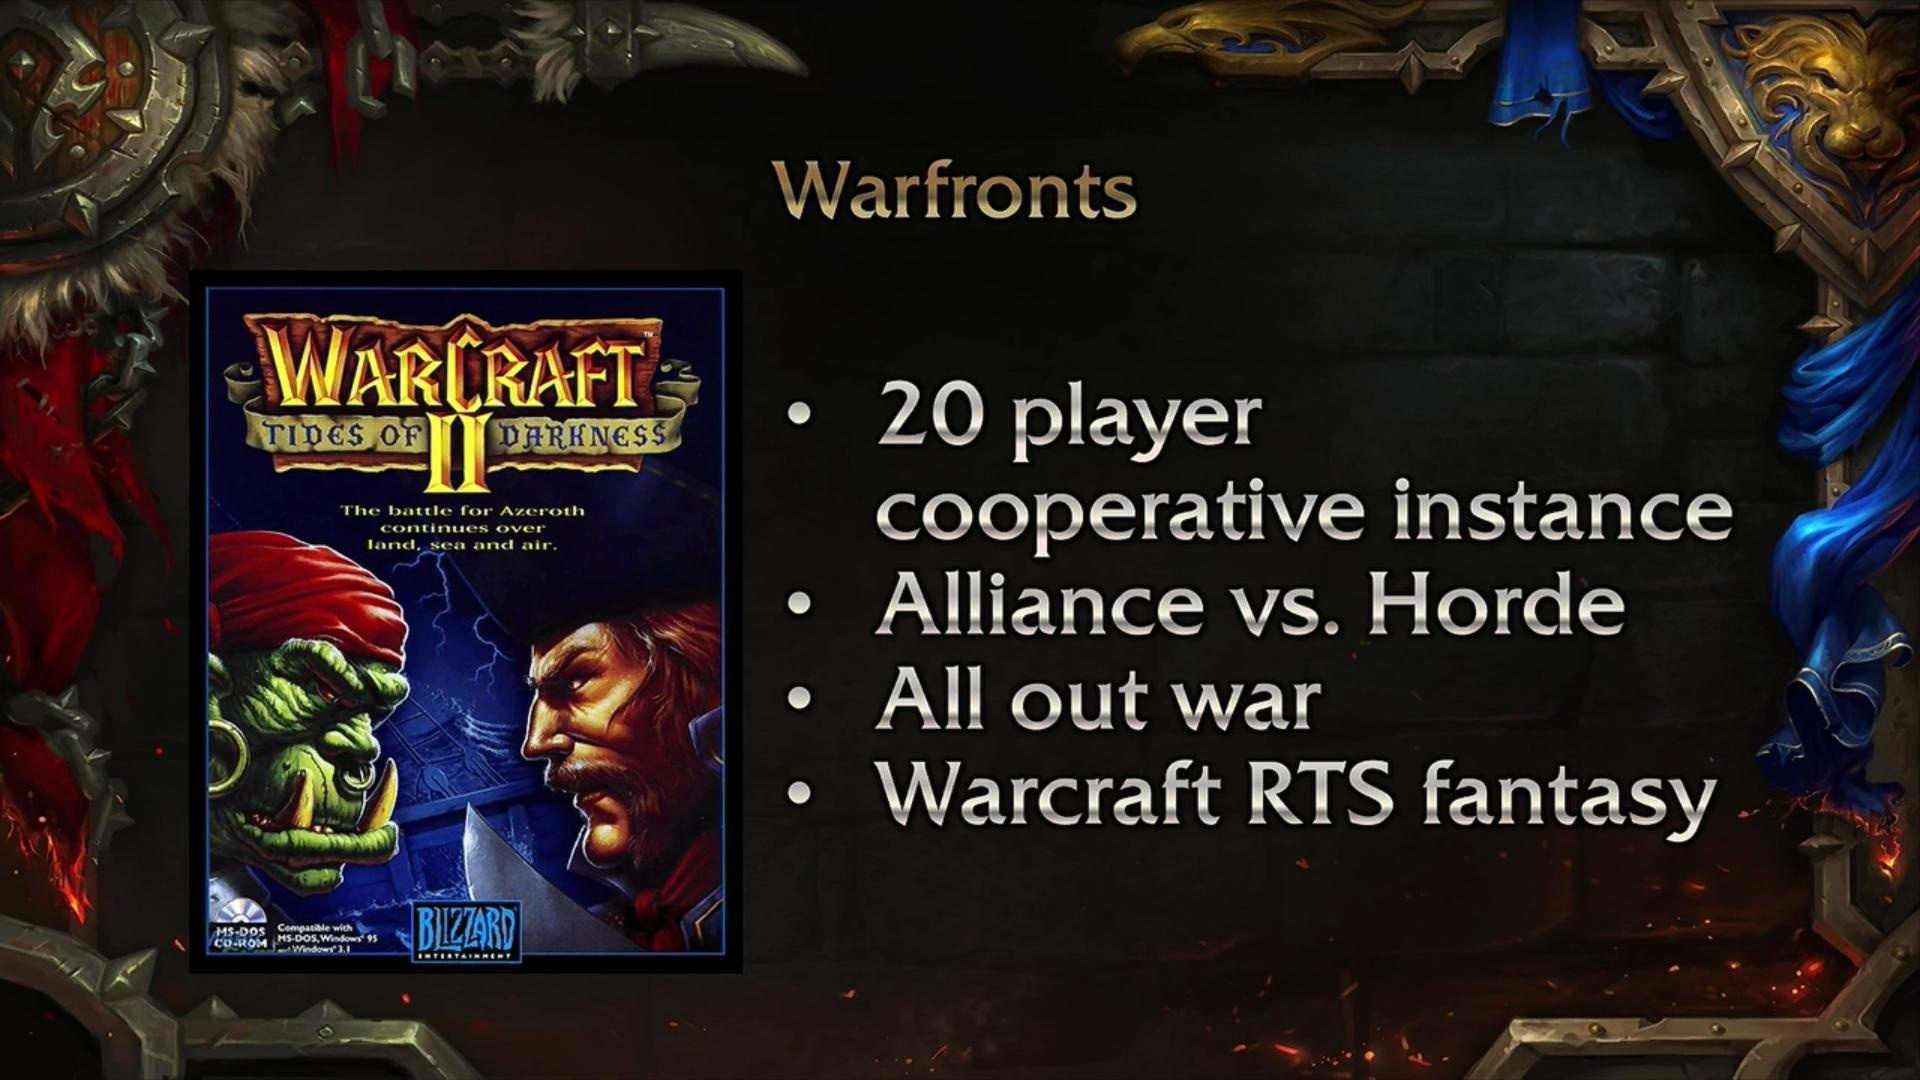 WoW Warfronts RTS-Feeling